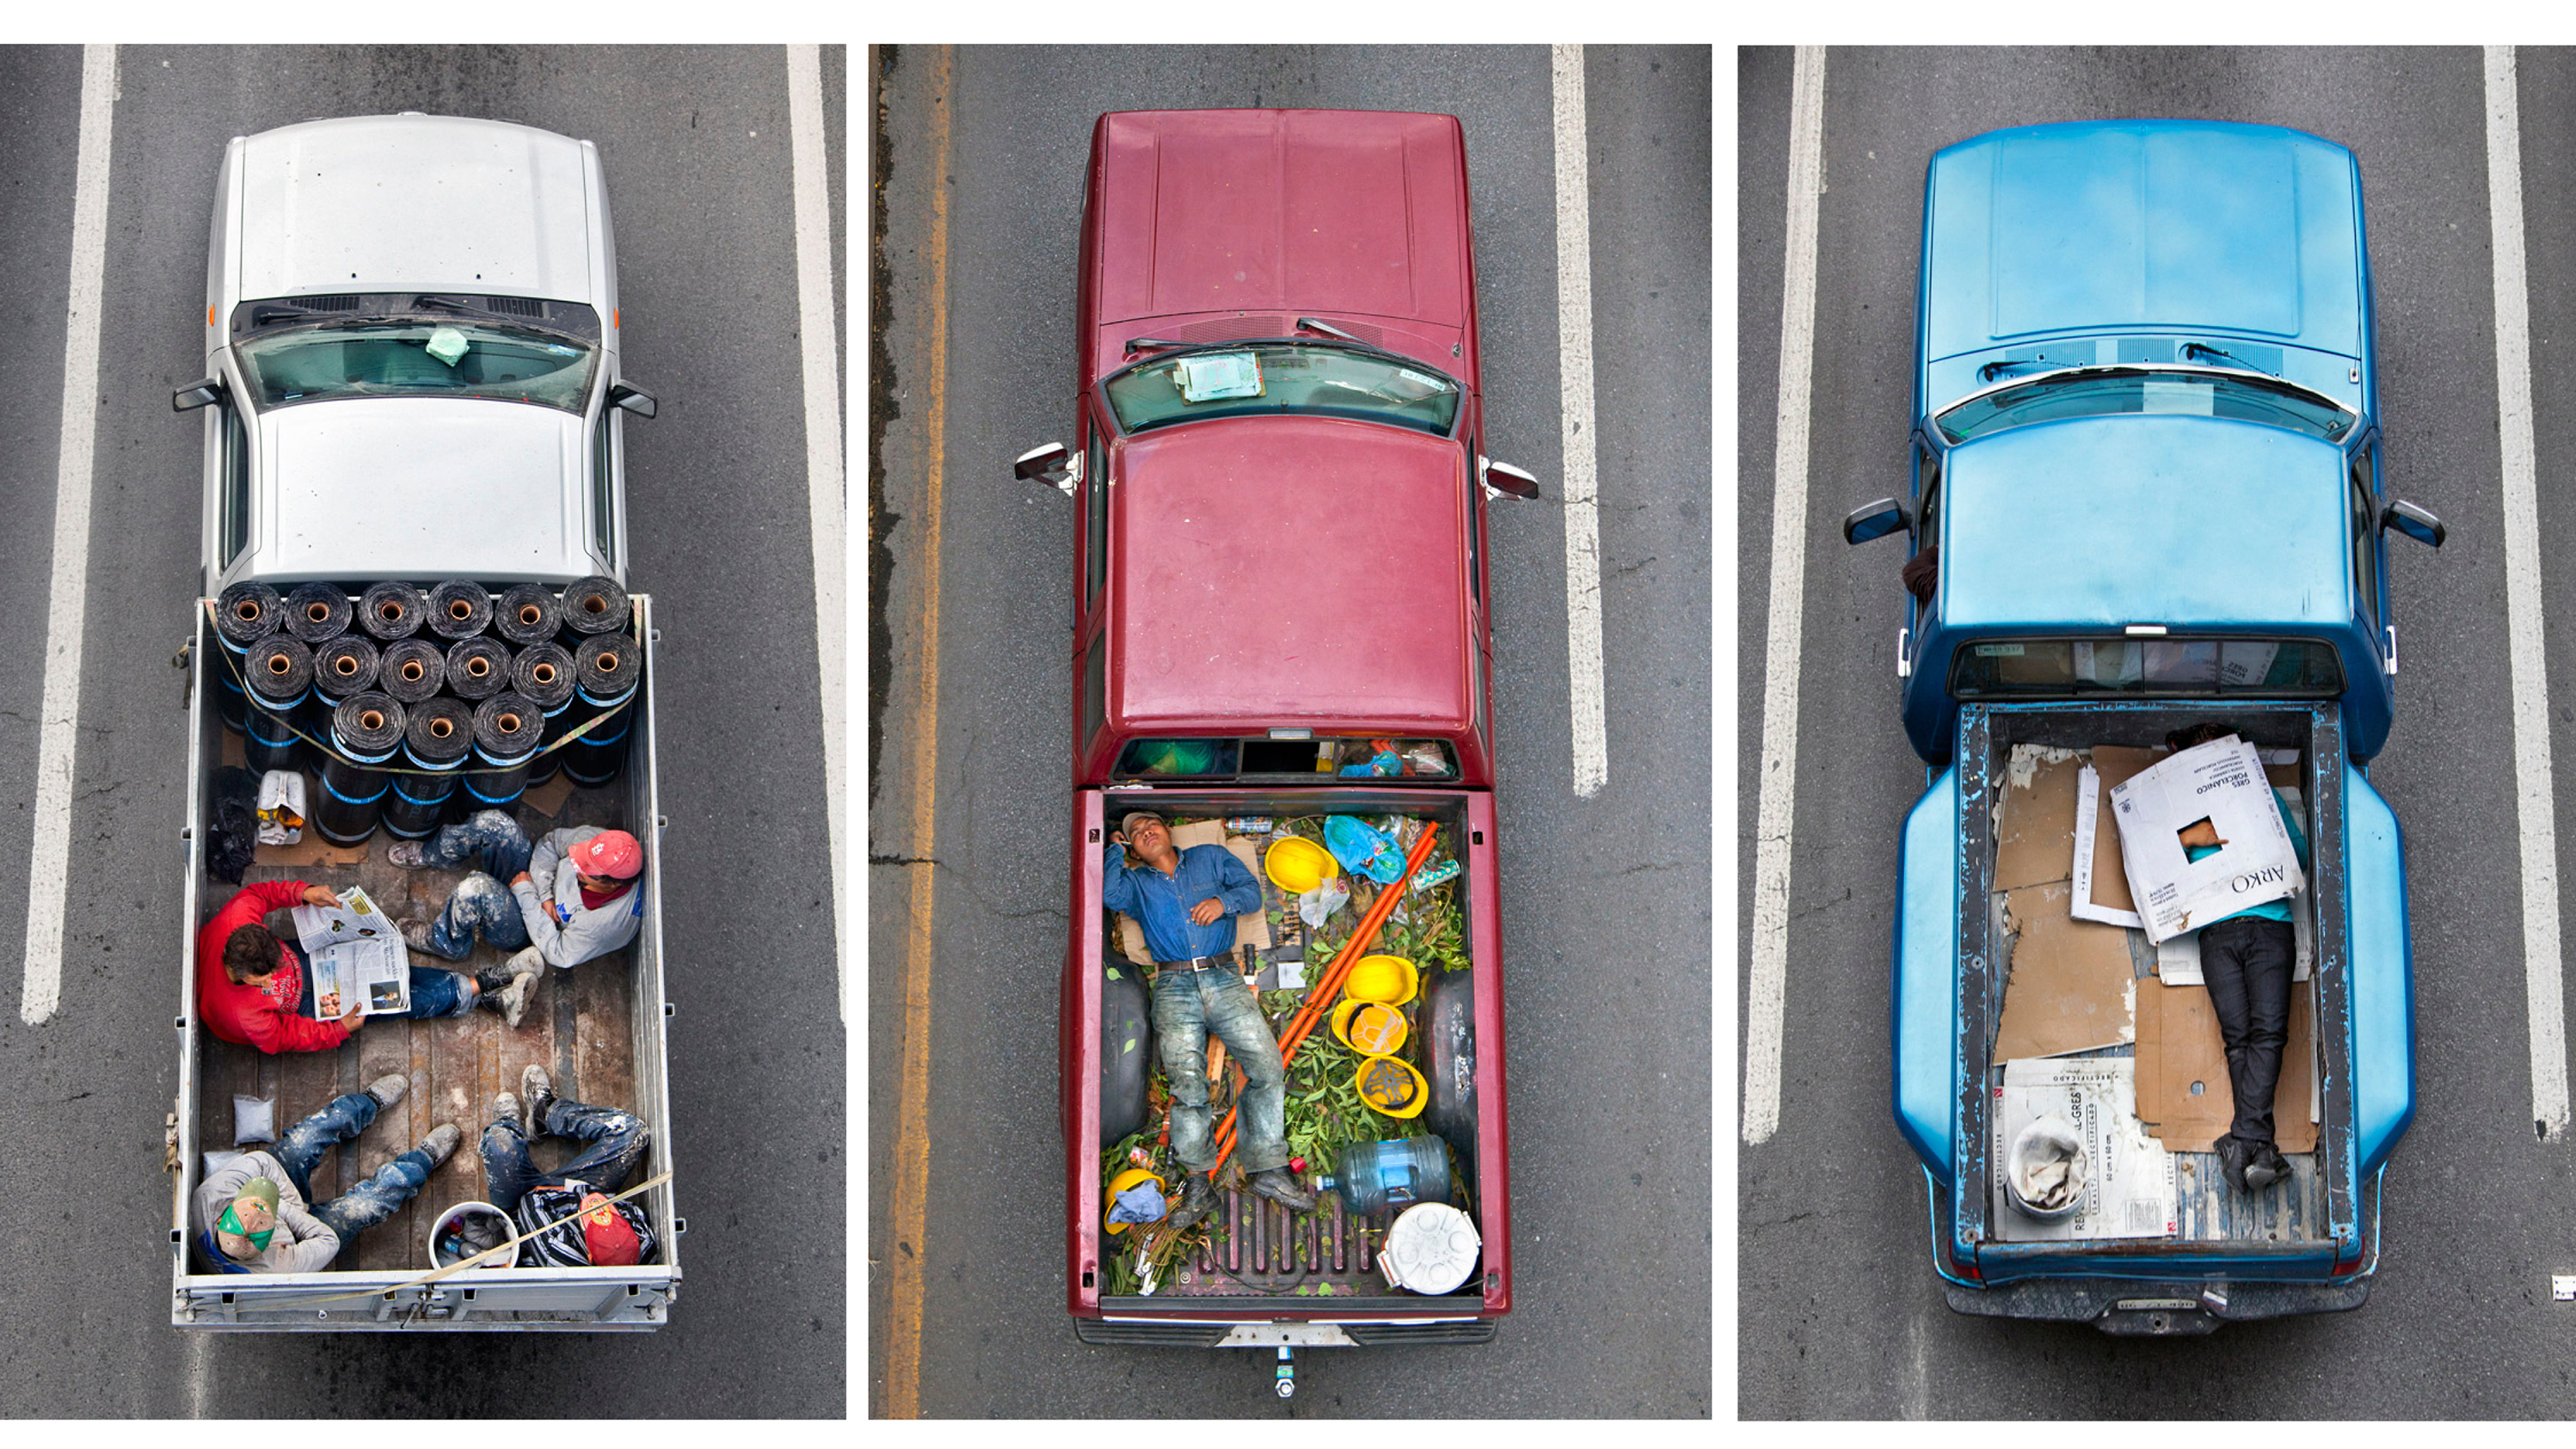 Mexican Carpoolers: A Photographer's View Of Truck Bed Commuters